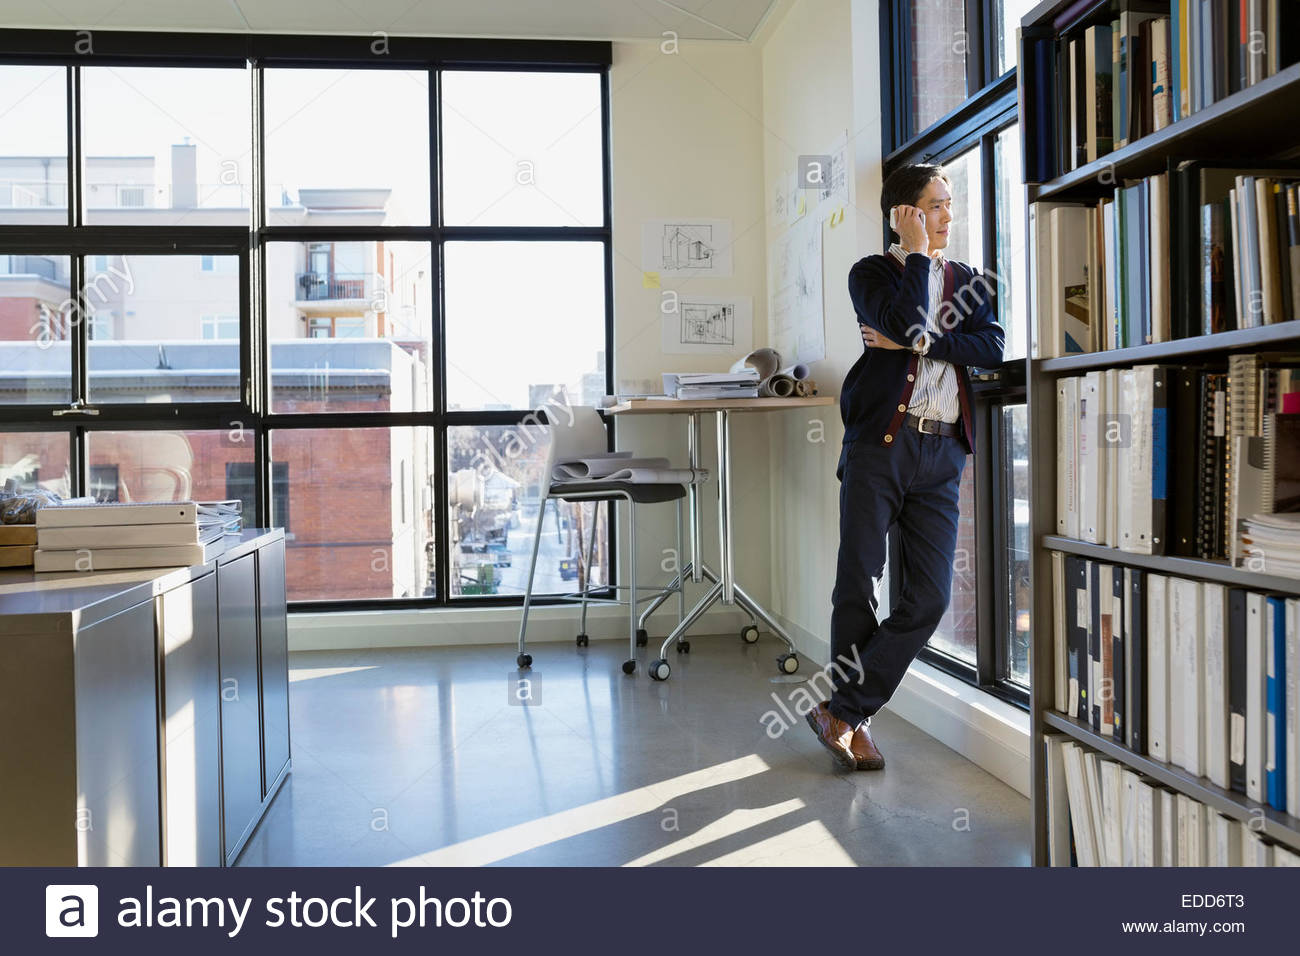 Businessman talking on cell phone at office window - Stock Image